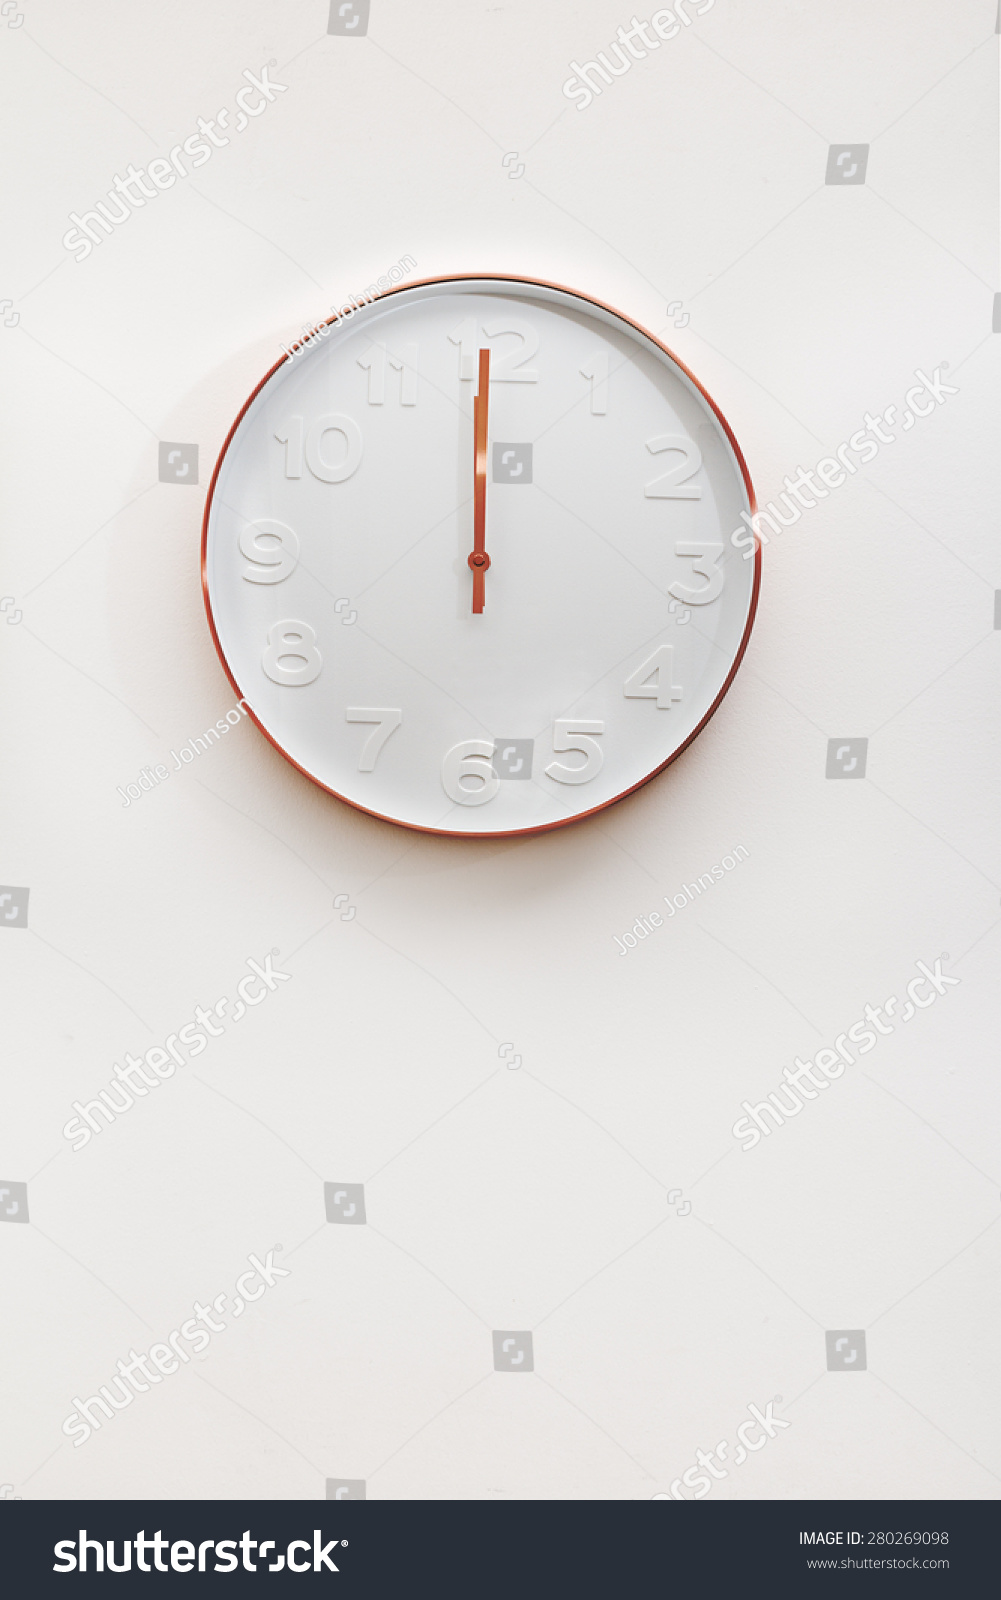 Modern White Clock Part - 46: Modern Copper And White Decorative Wall Clock On A White Wall